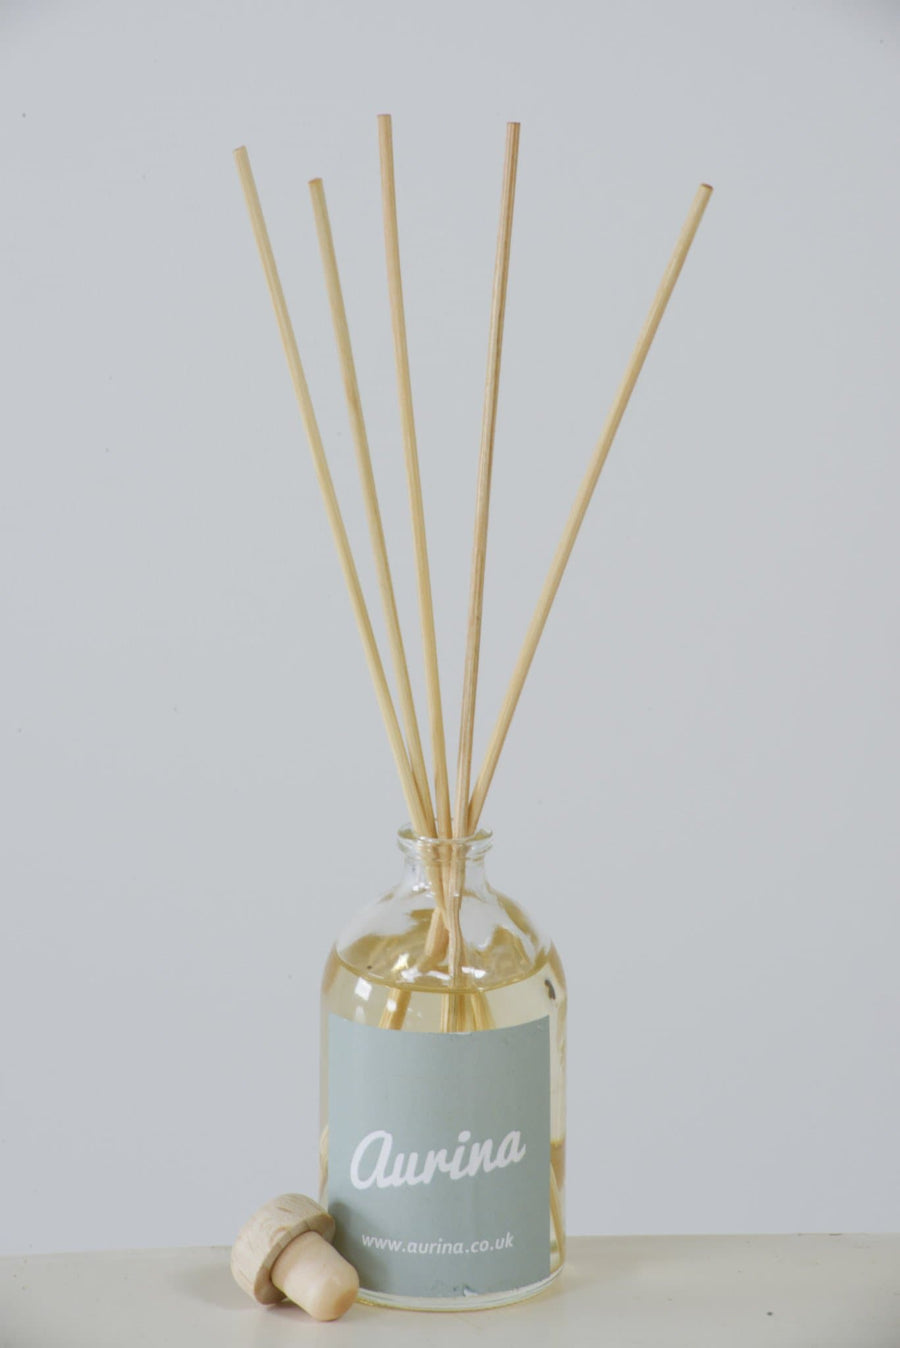 Green Tea & Ginger Diffuser - Aurina Ltd